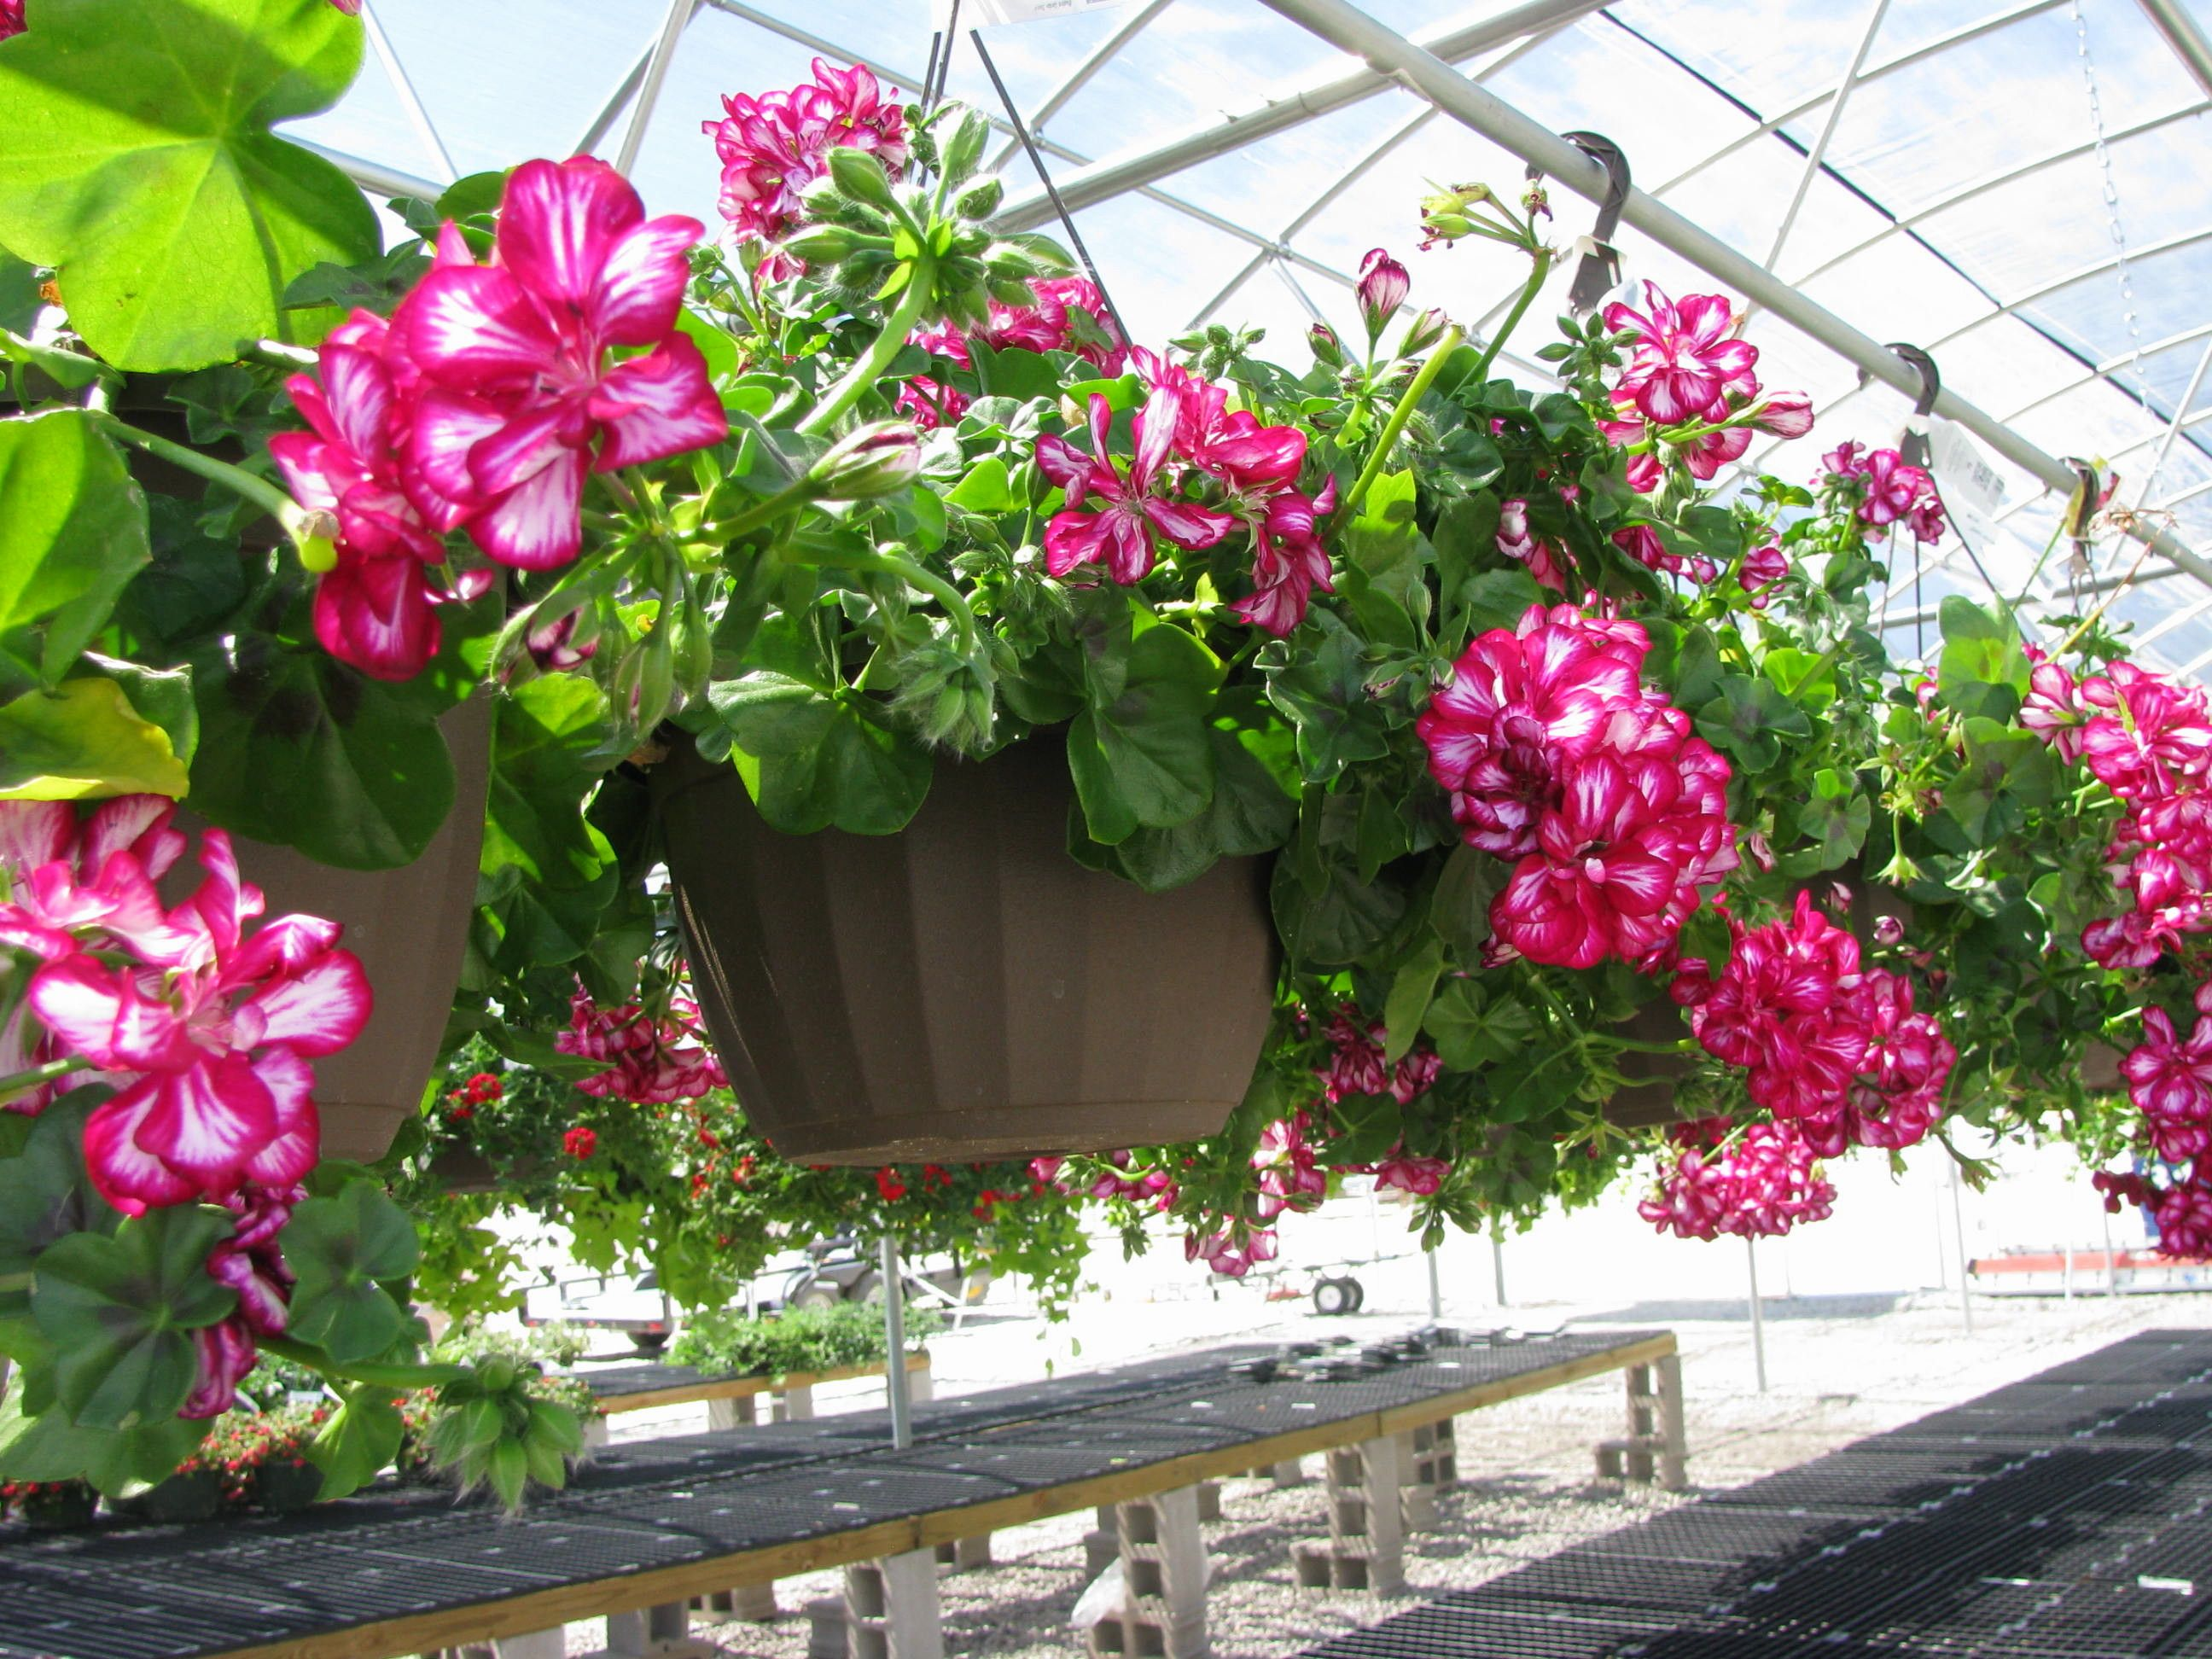 List of annual flowers ided by color sun amp shade types - Hanging Flower Baskets For Shade Google Search